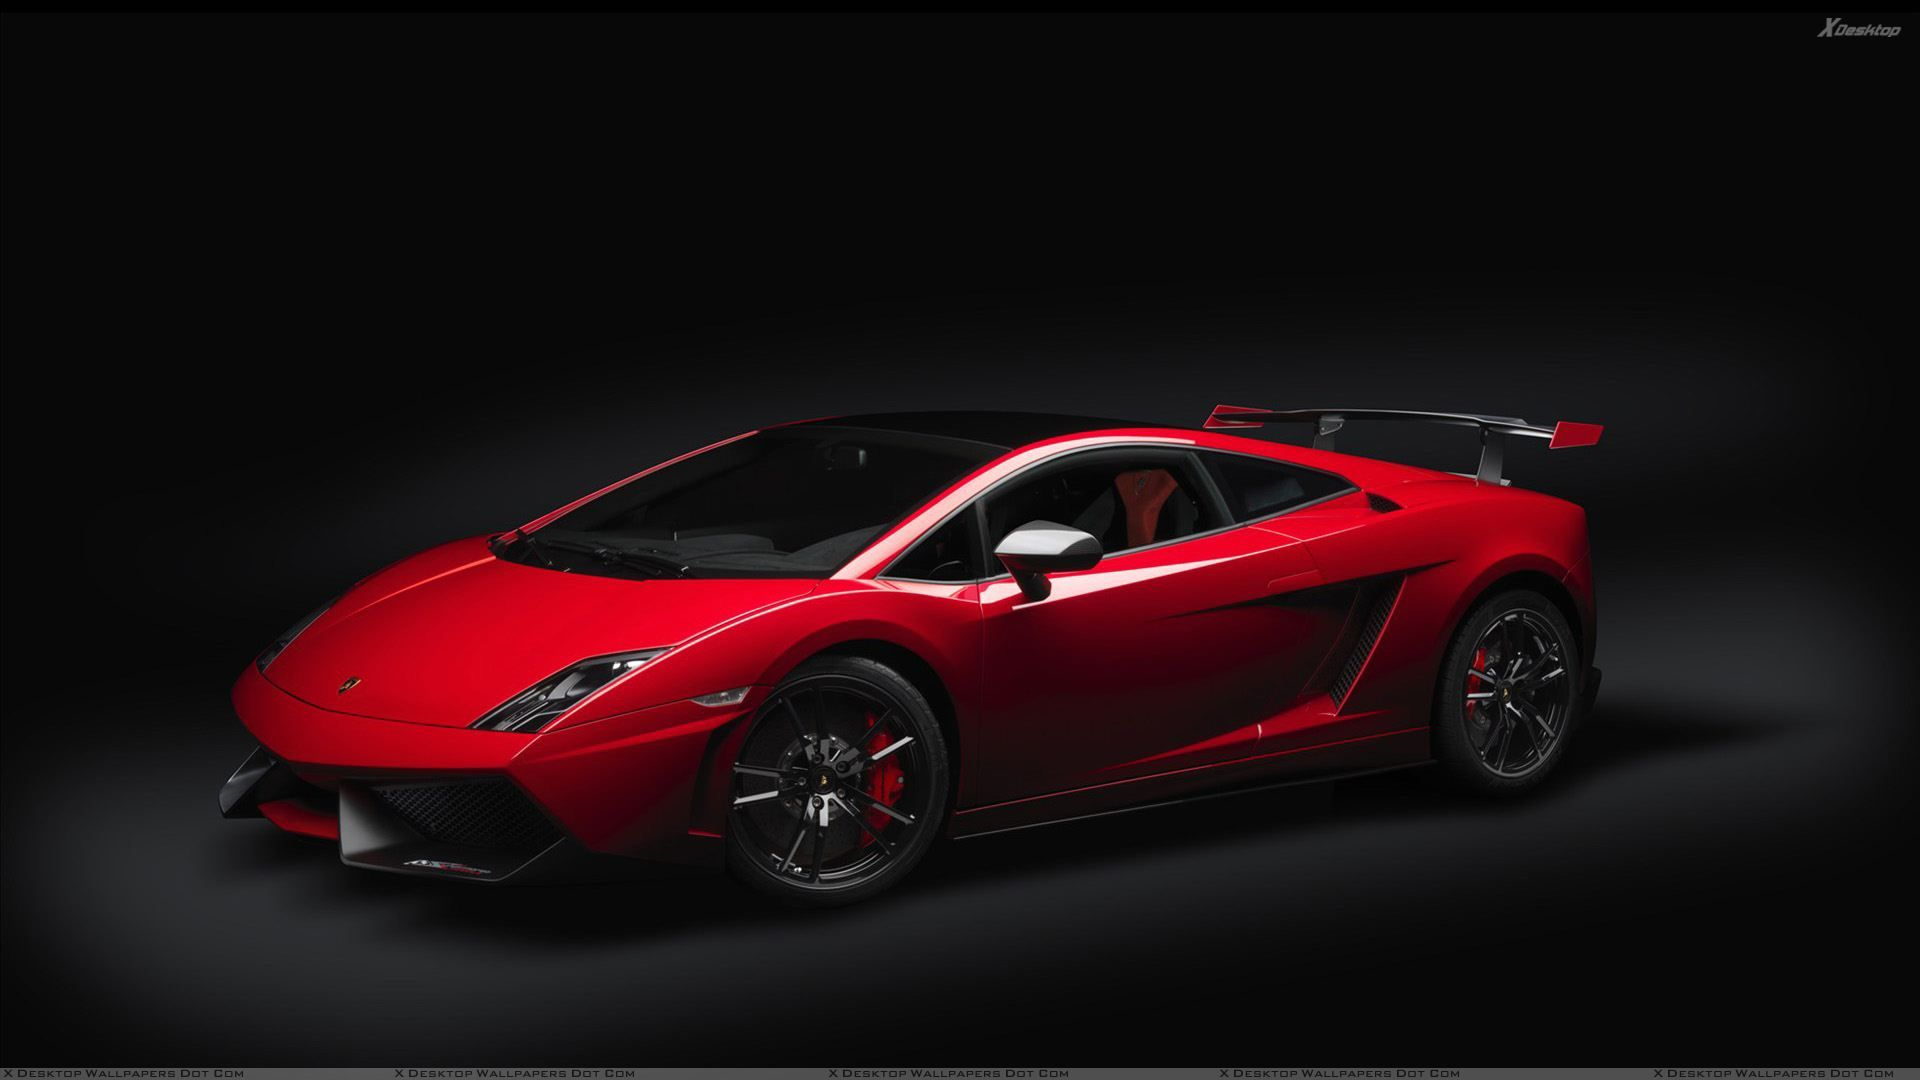 Red Color 2012 Lamborghini Gallardo Lp 570 Wallpaper